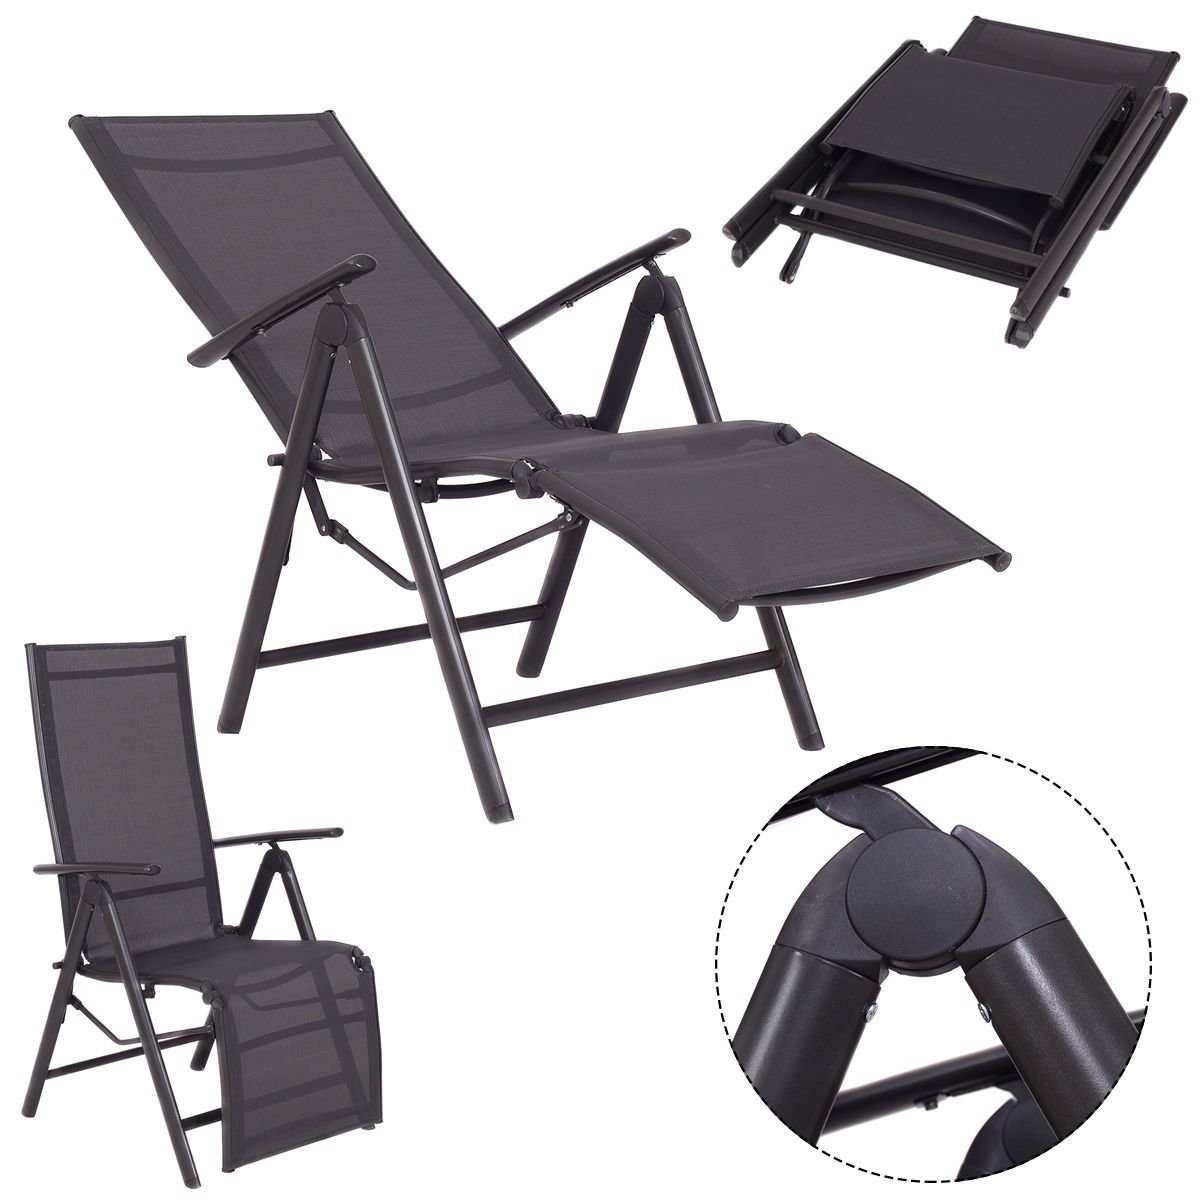 New Adjustable Folding Lounge Chaise Chair Recliner Outdoor Patio Furniture